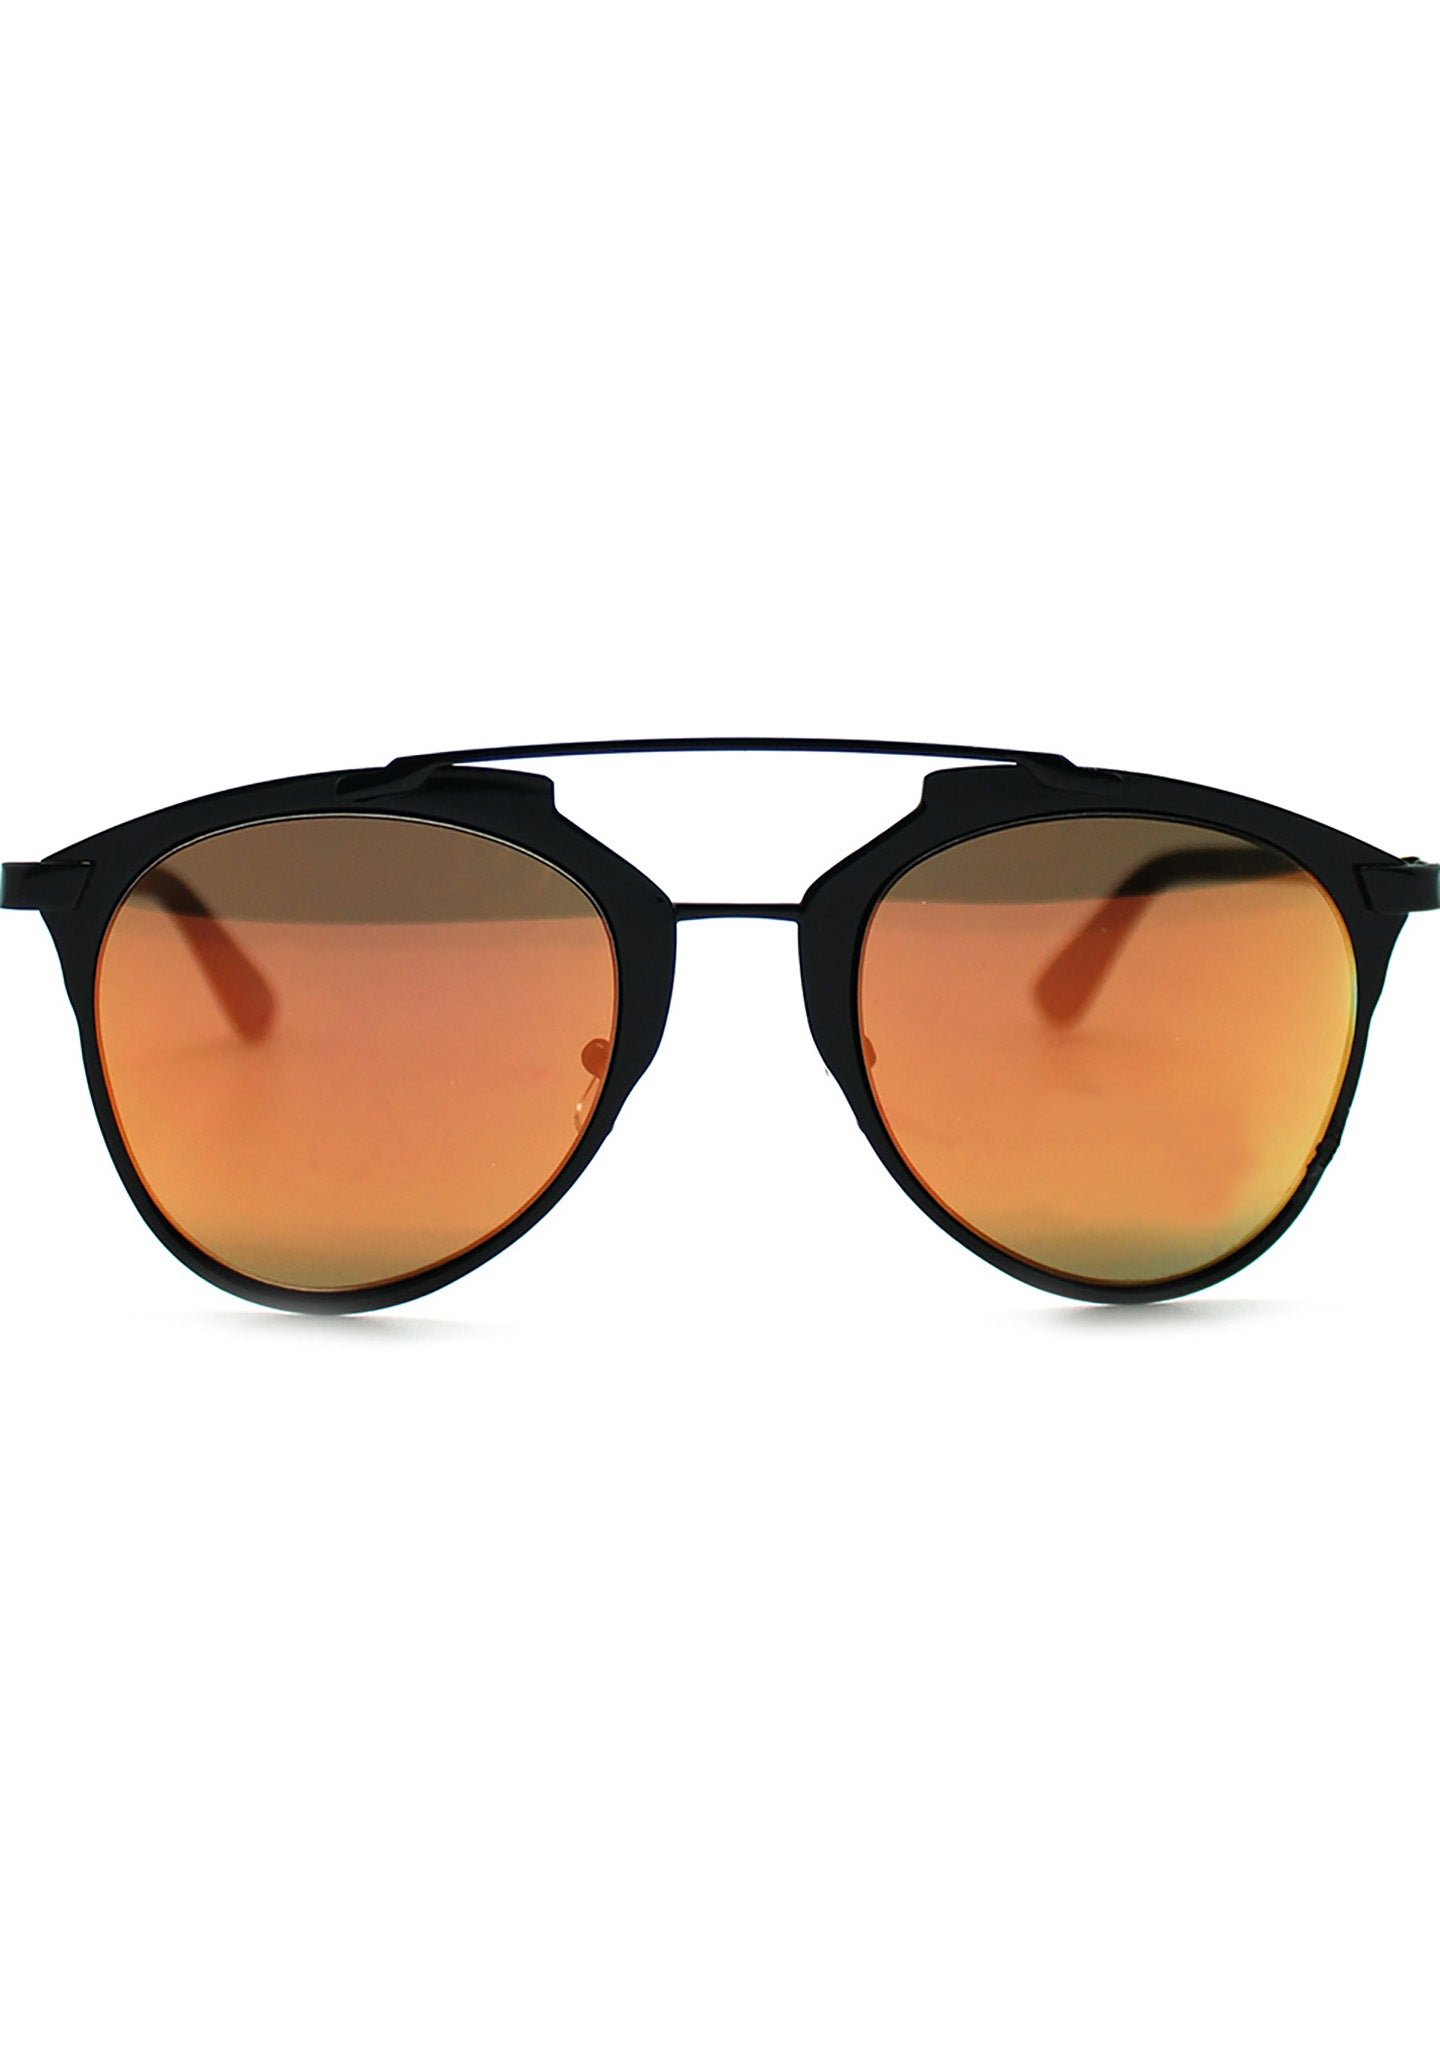 7 LUXE Surreal Sunglasses